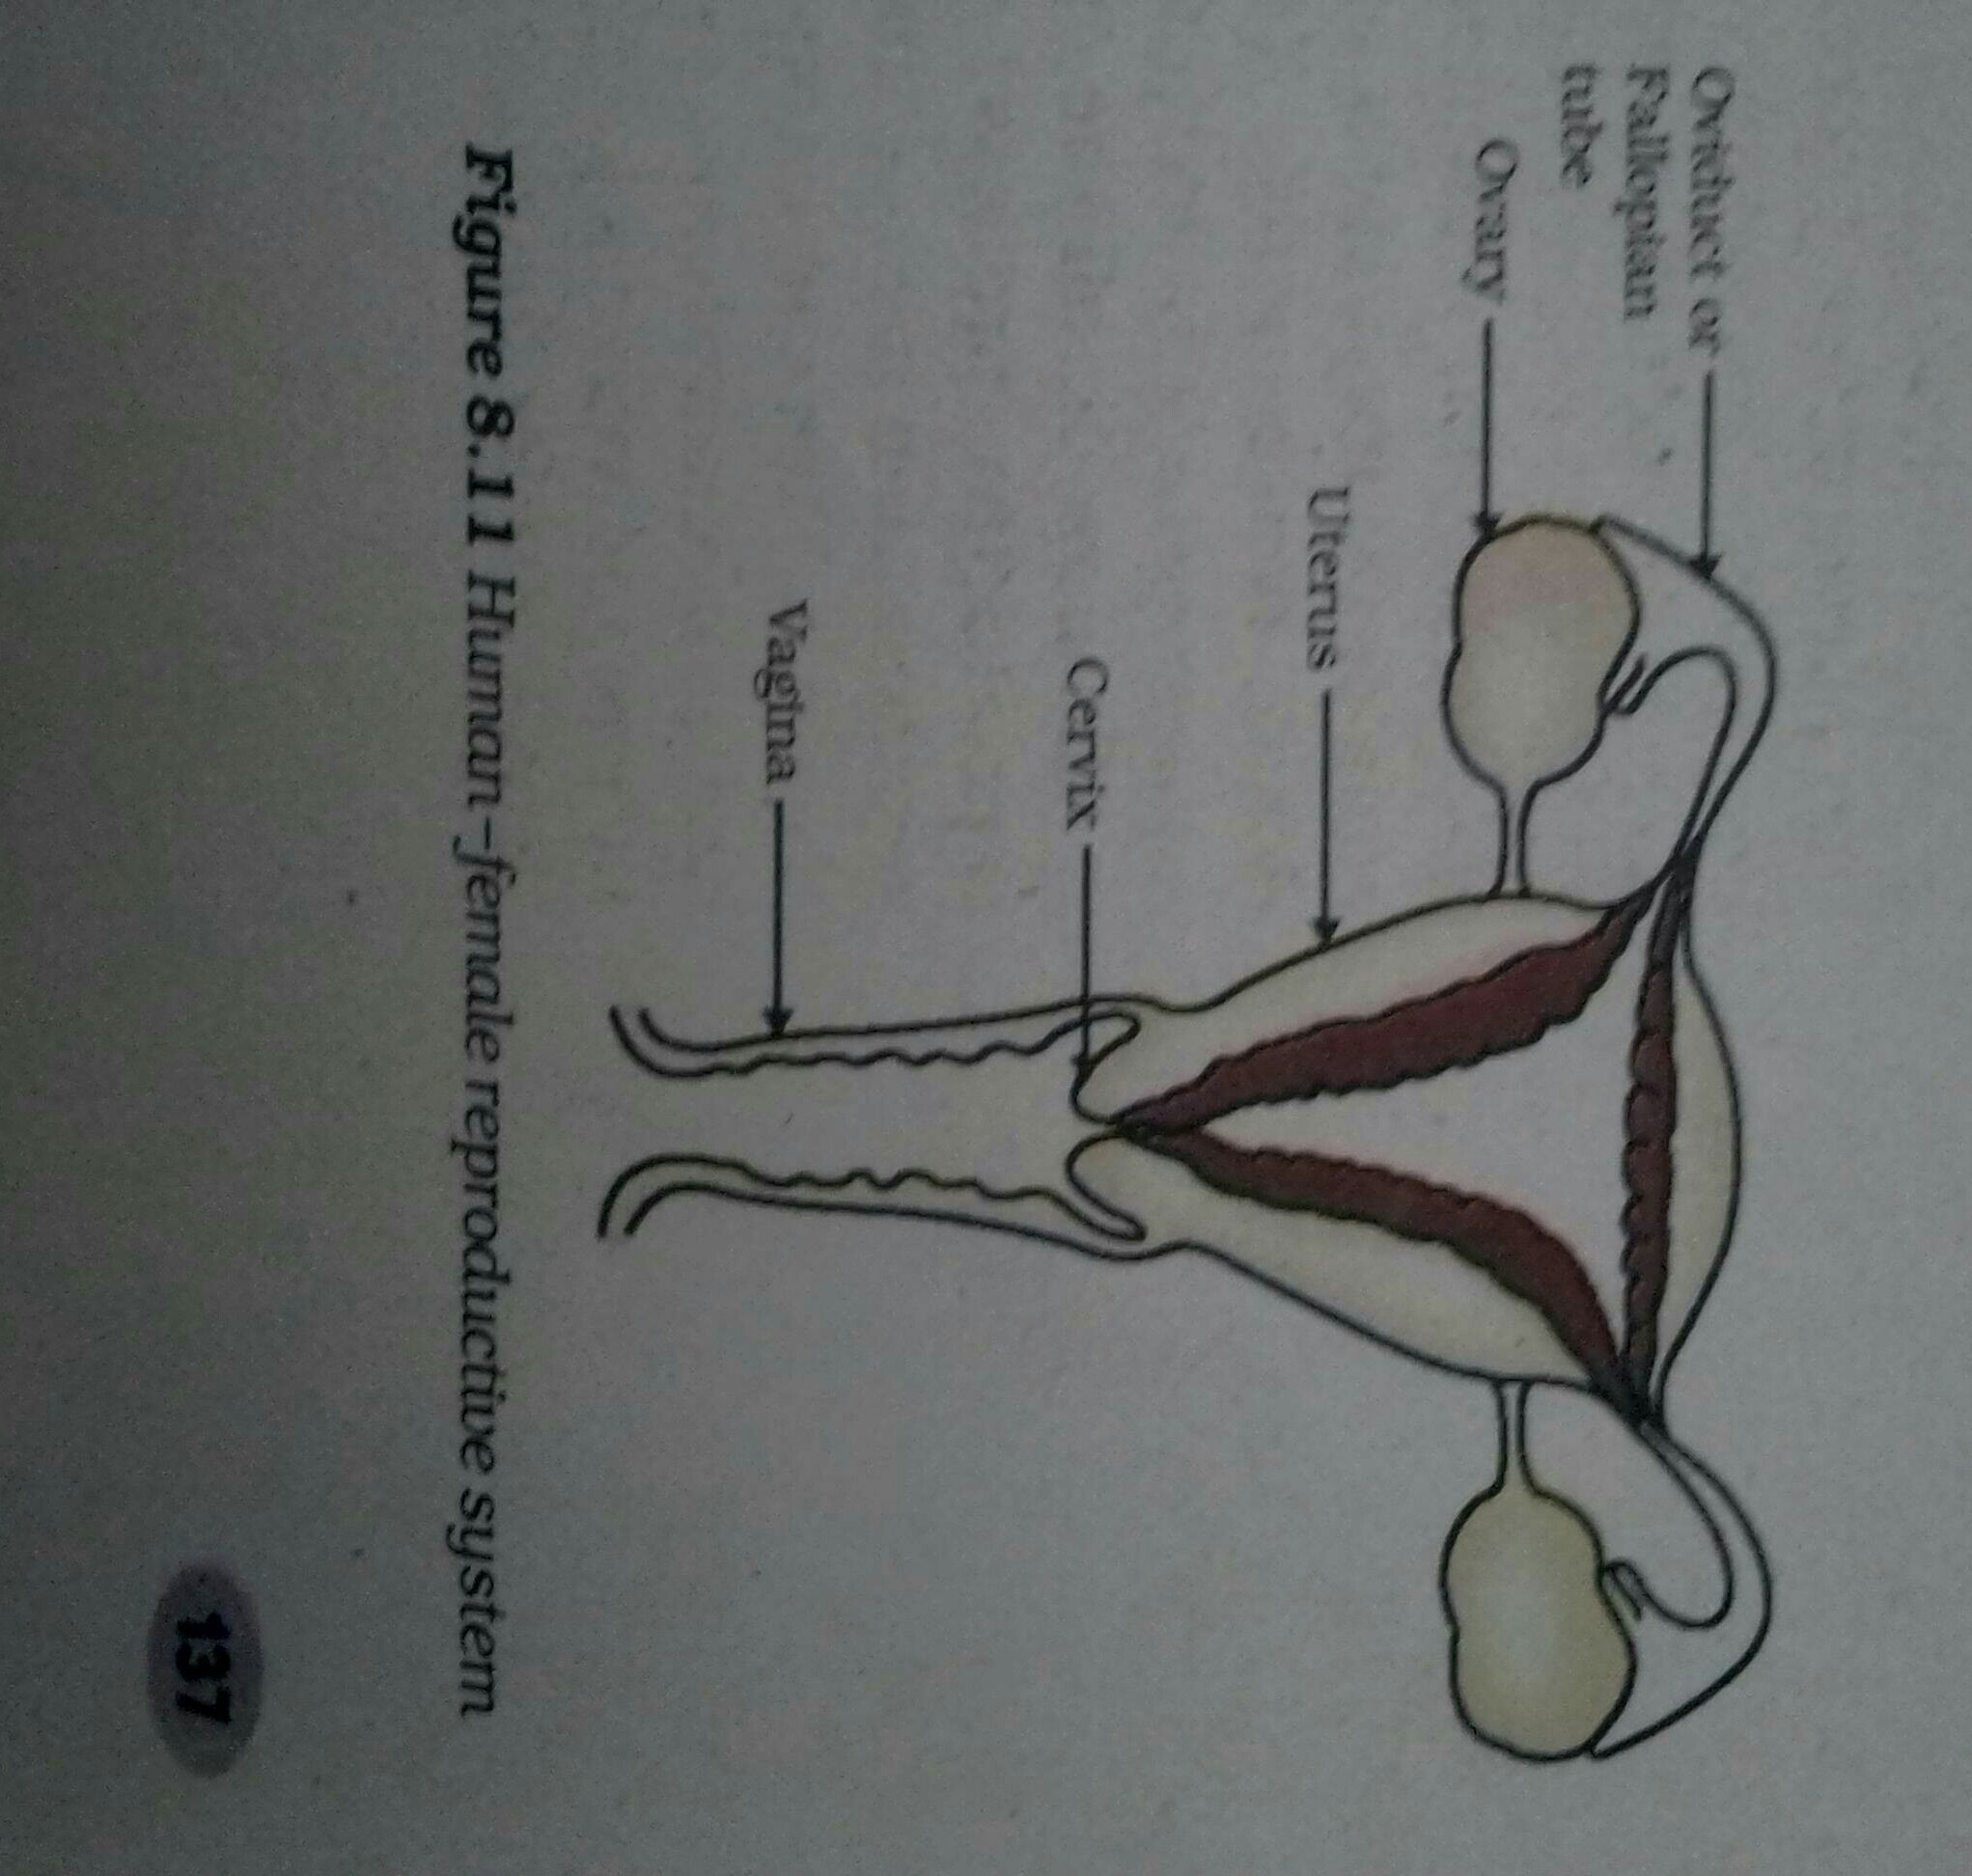 Human Female Reproductive System Sketch The Labeled Diagrams